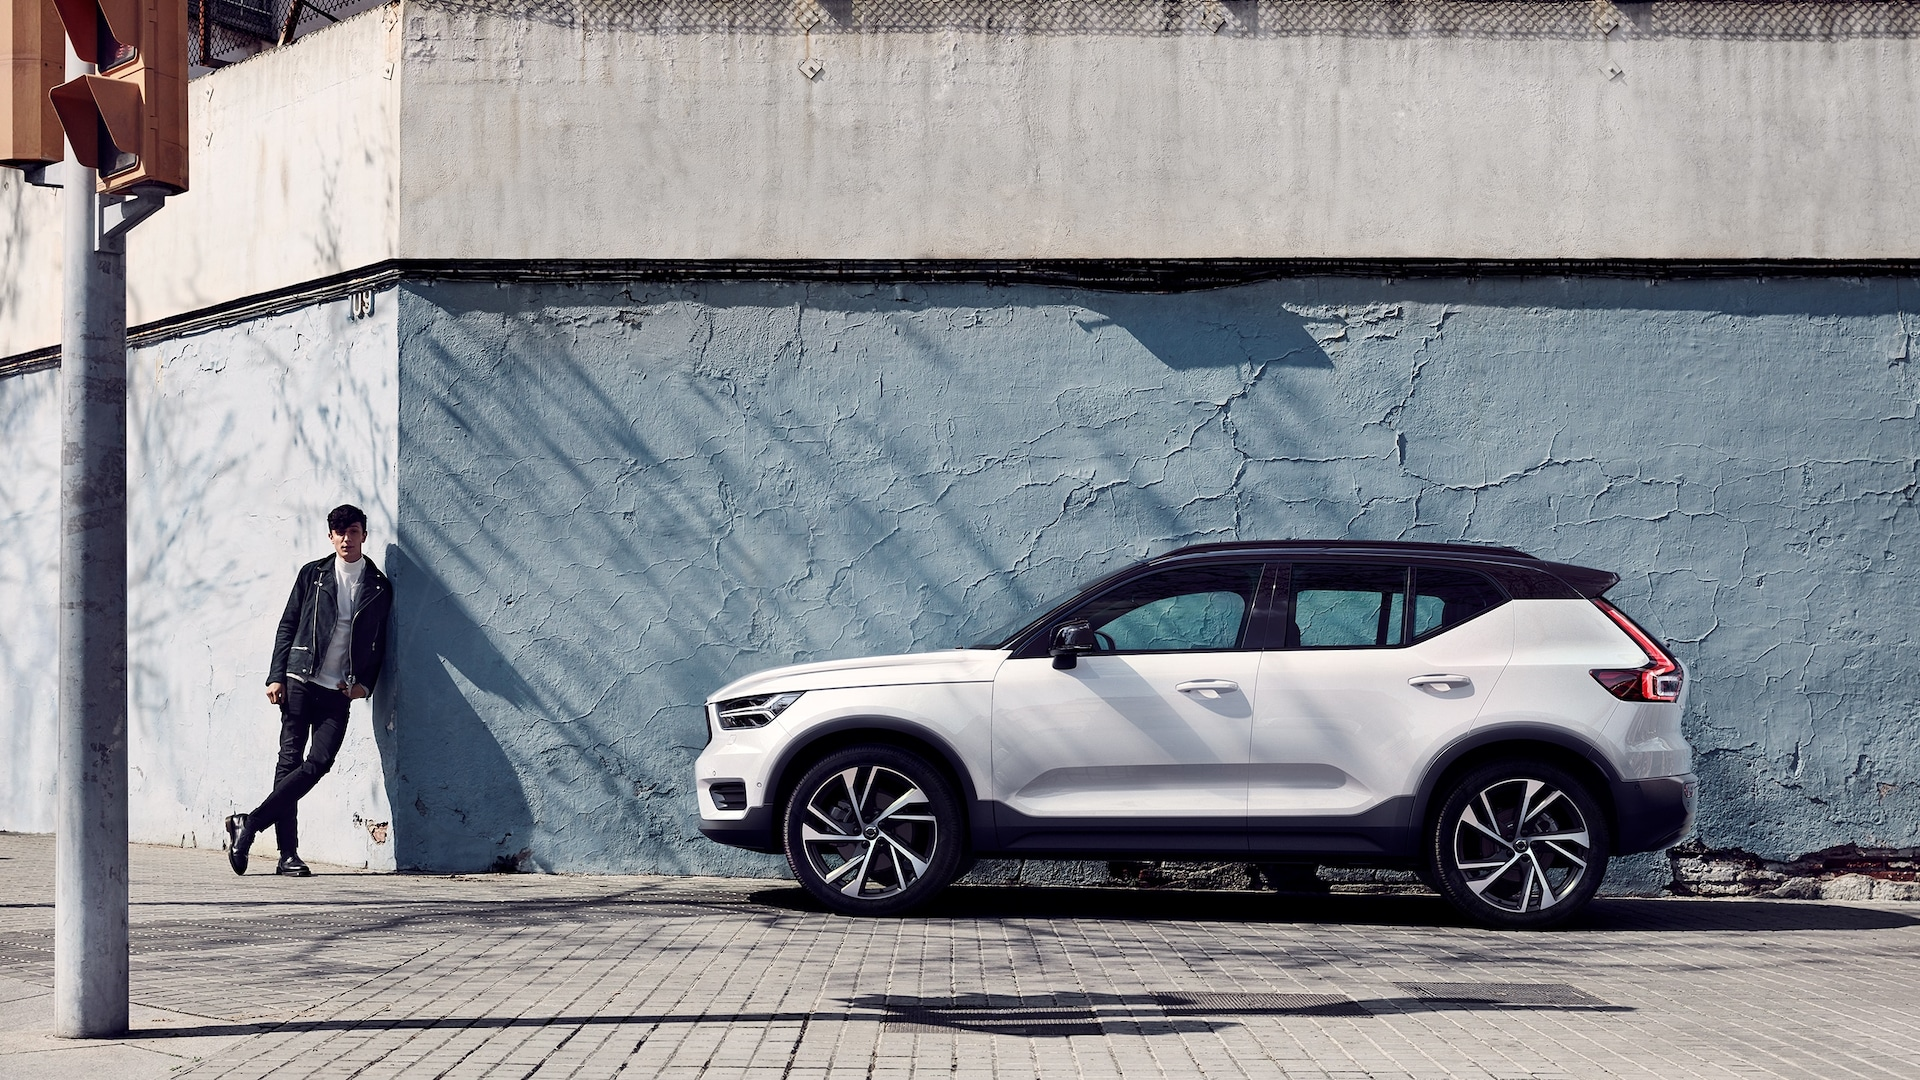 A man stands leaning against a blue concrete facade, next to him is a white Volvo XC40